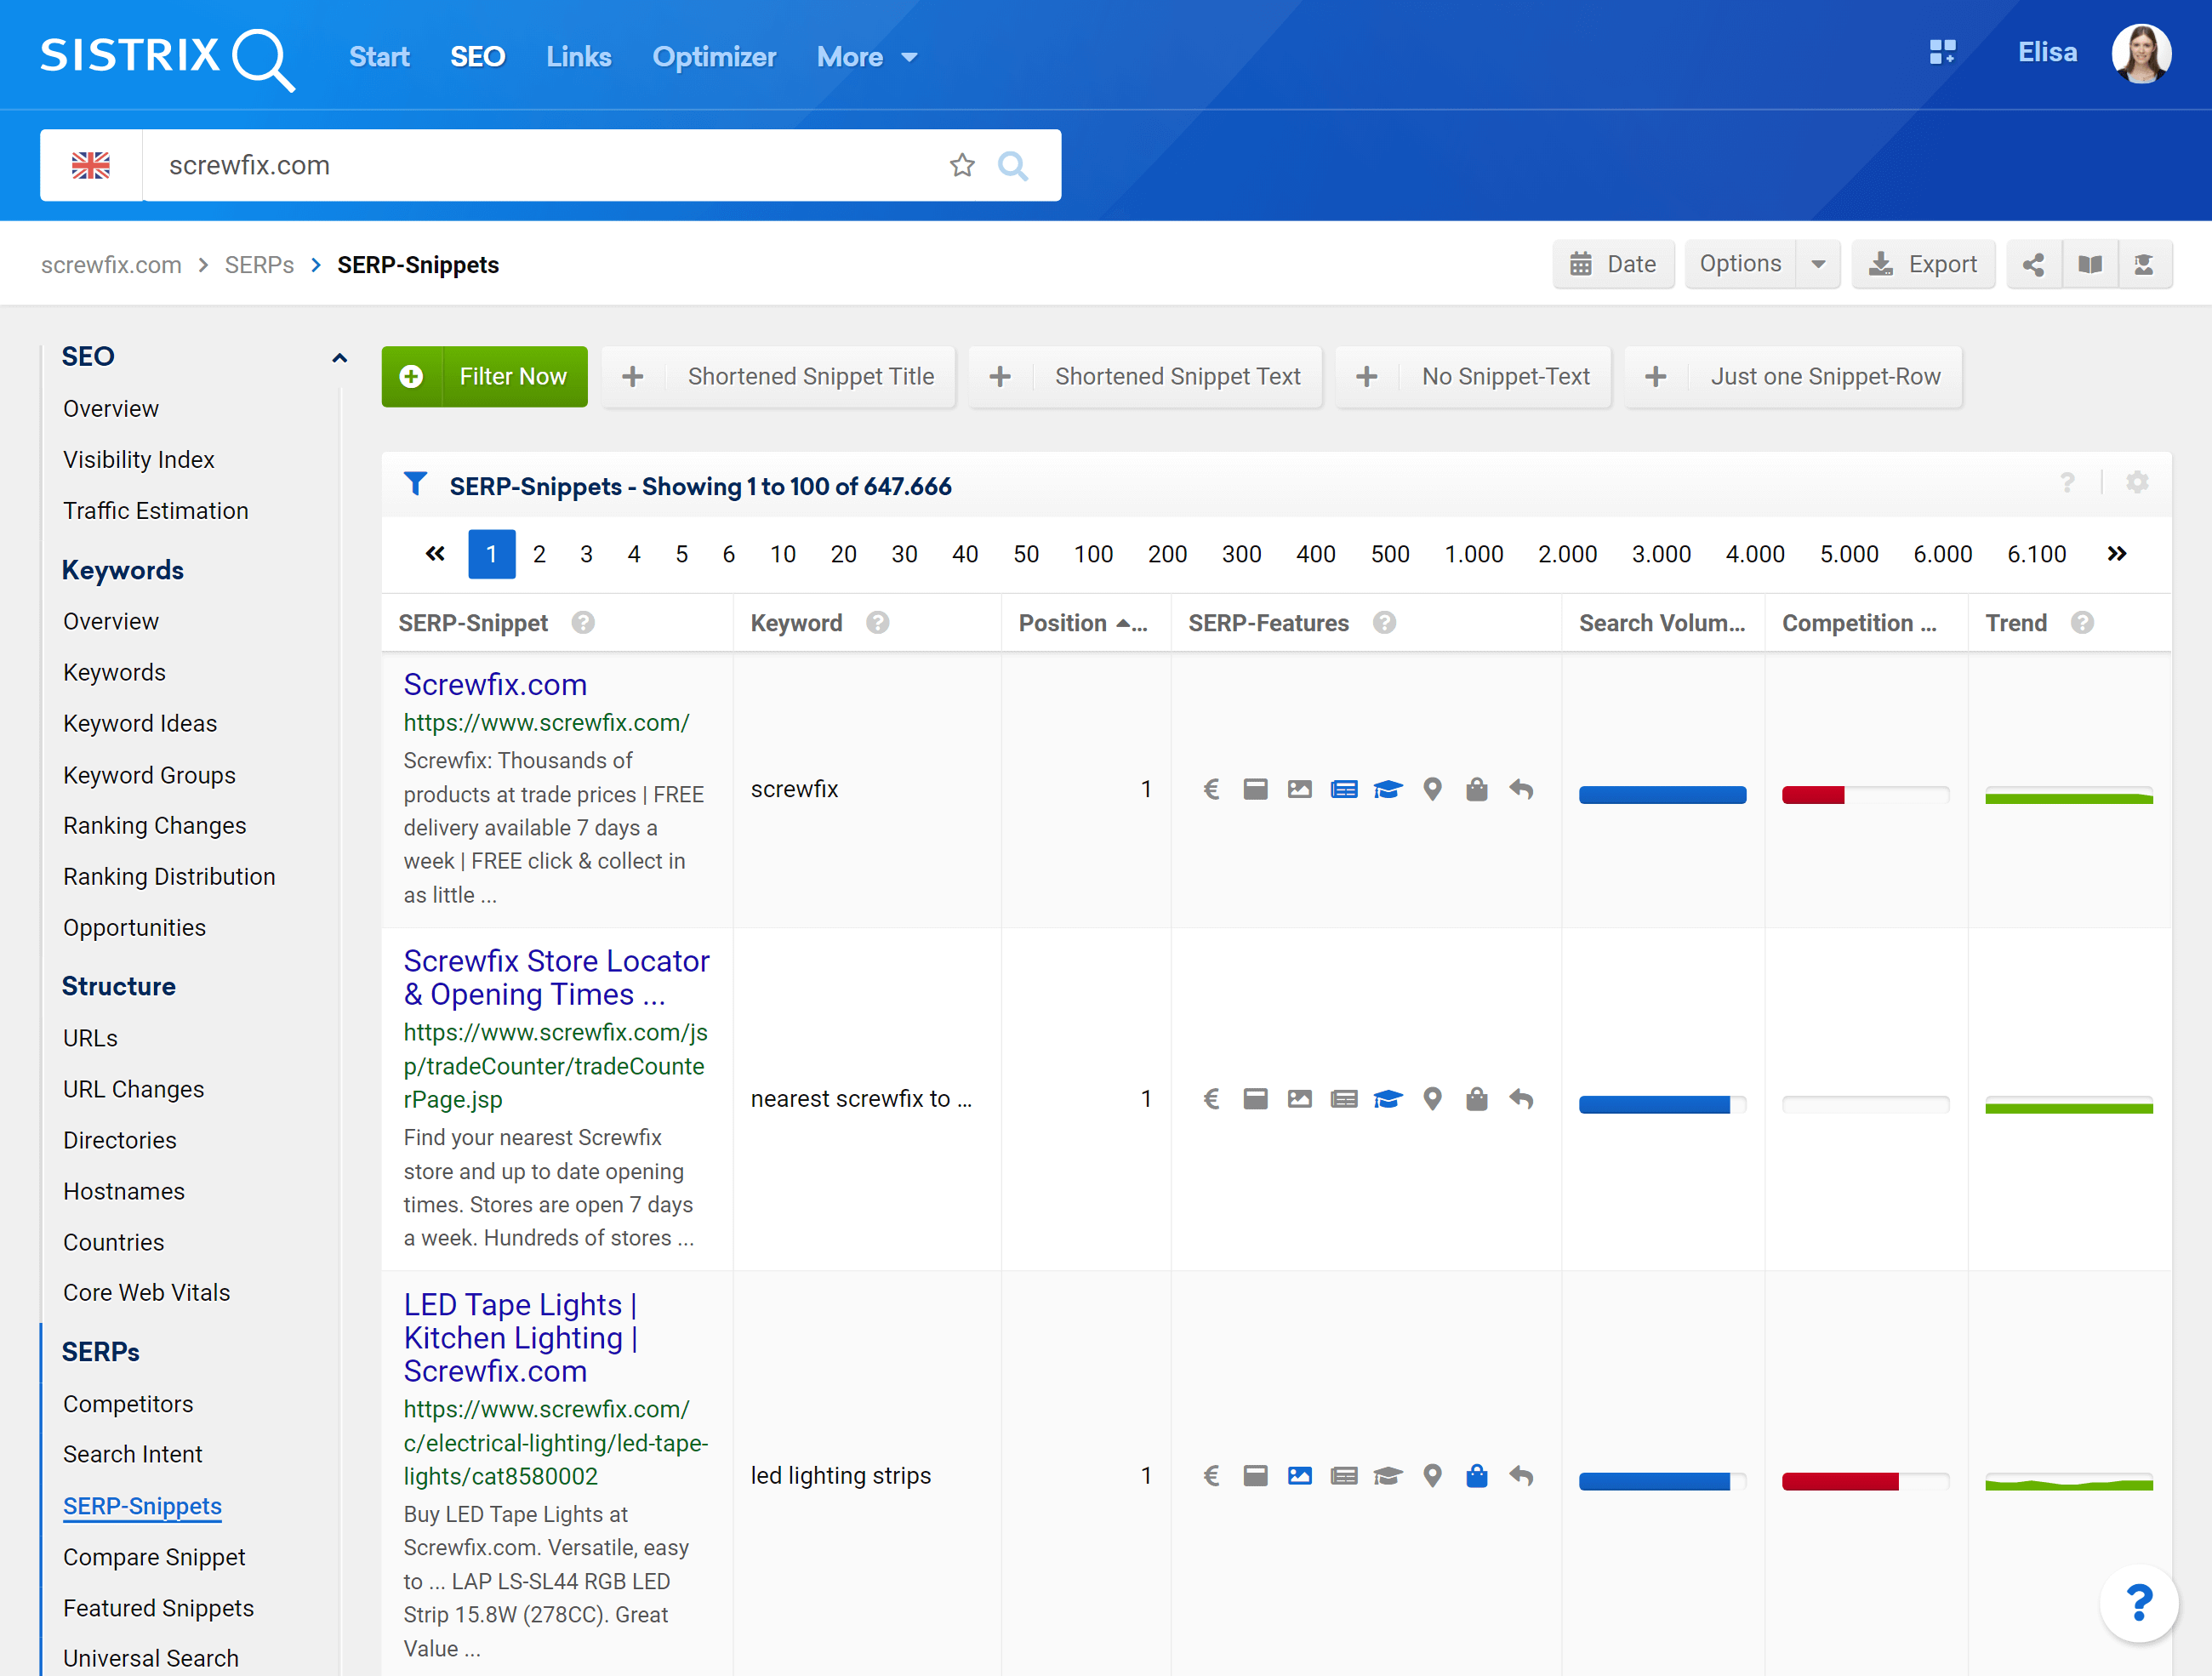 SERP Snippets